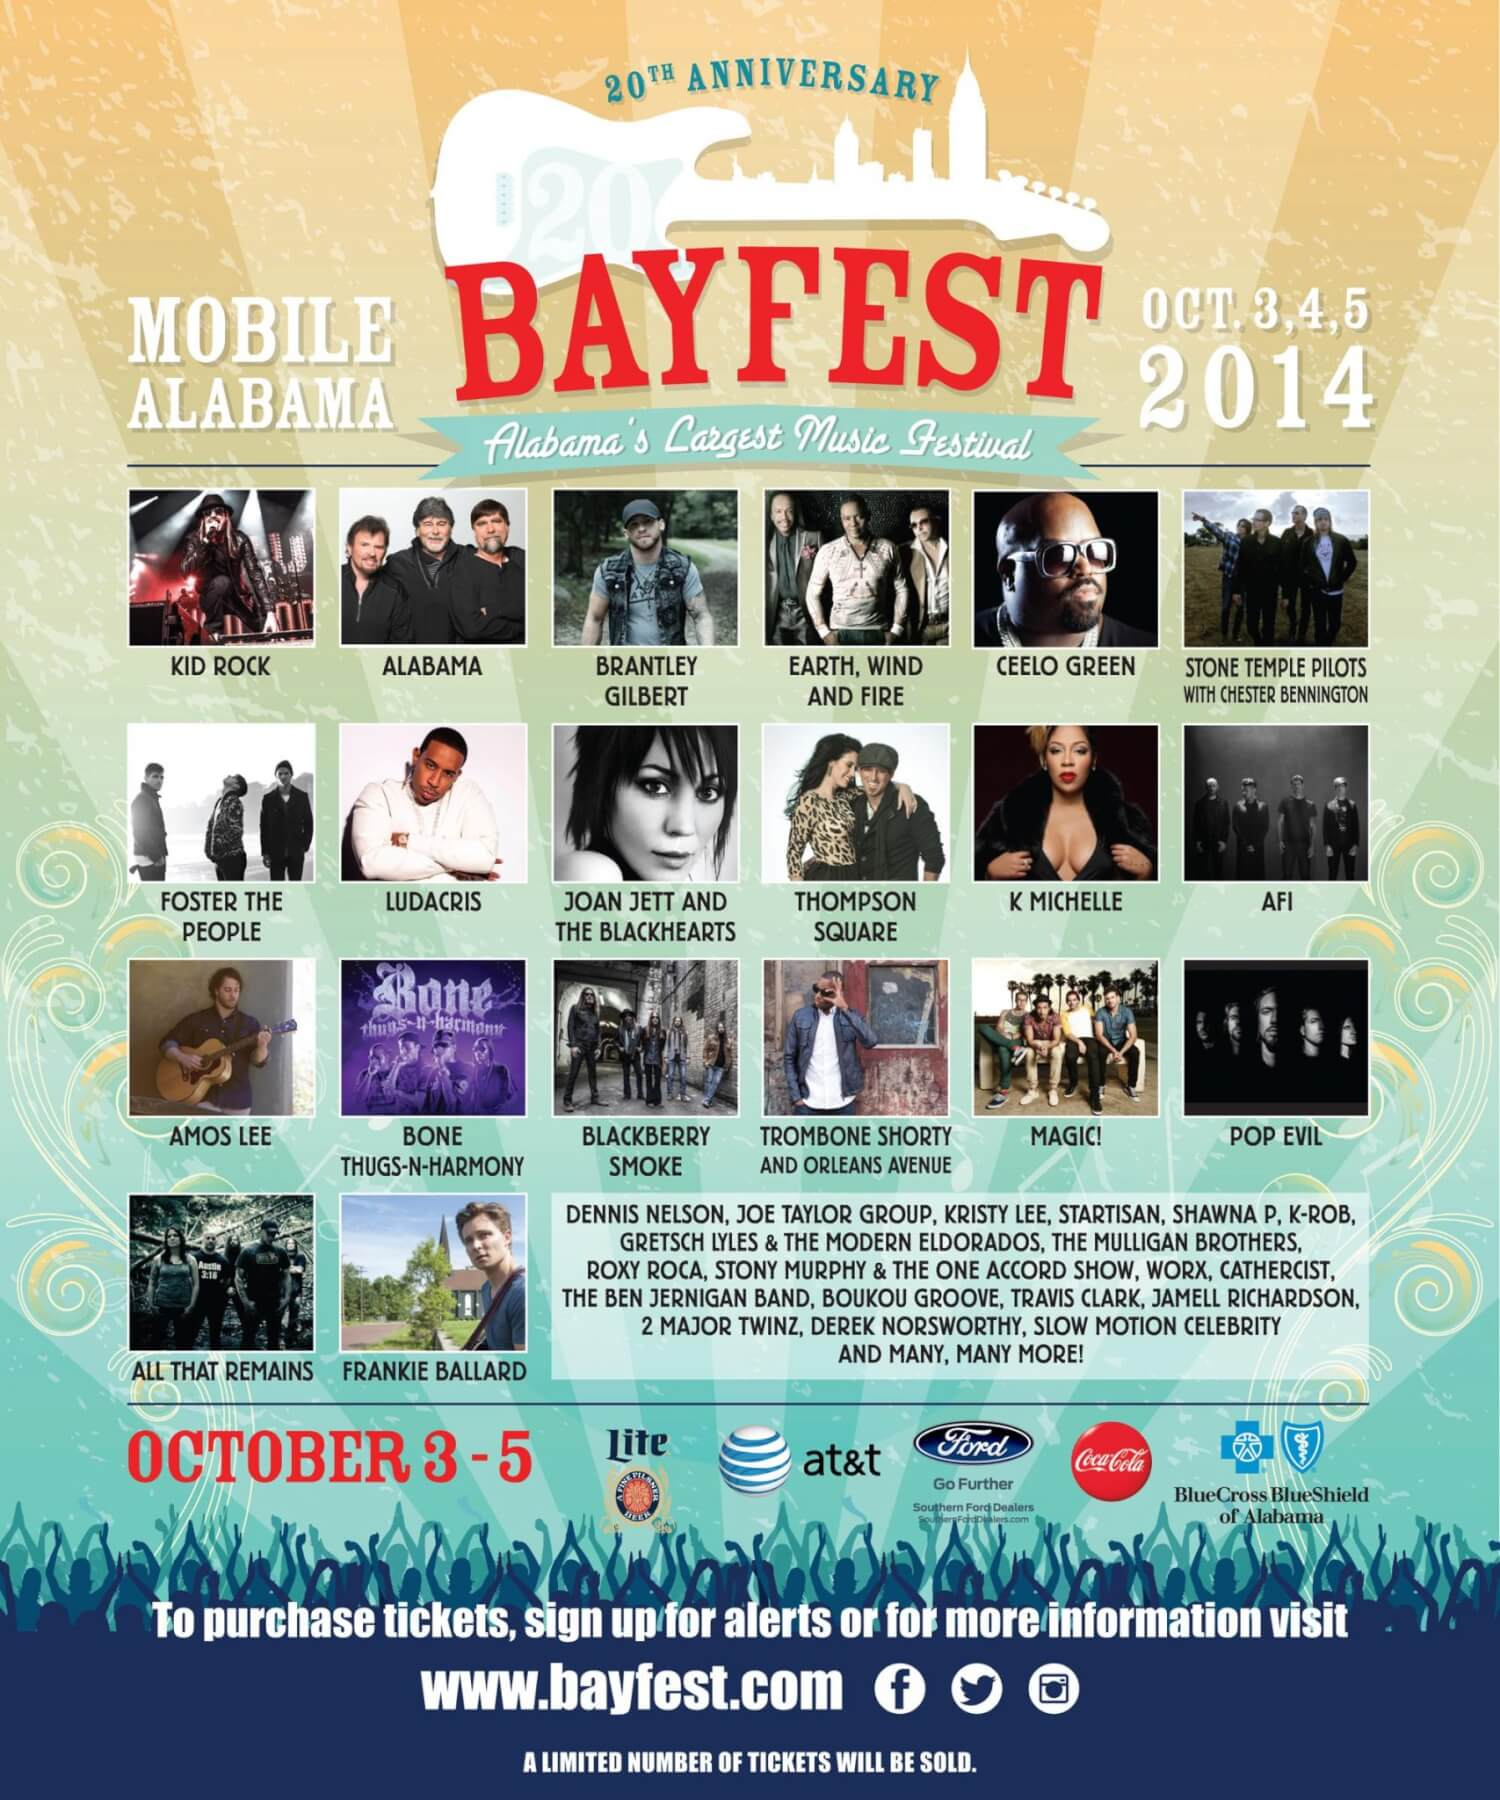 BayFest 2014 gets 'badass' with Kid Rock, Alabama, CeeLo and others